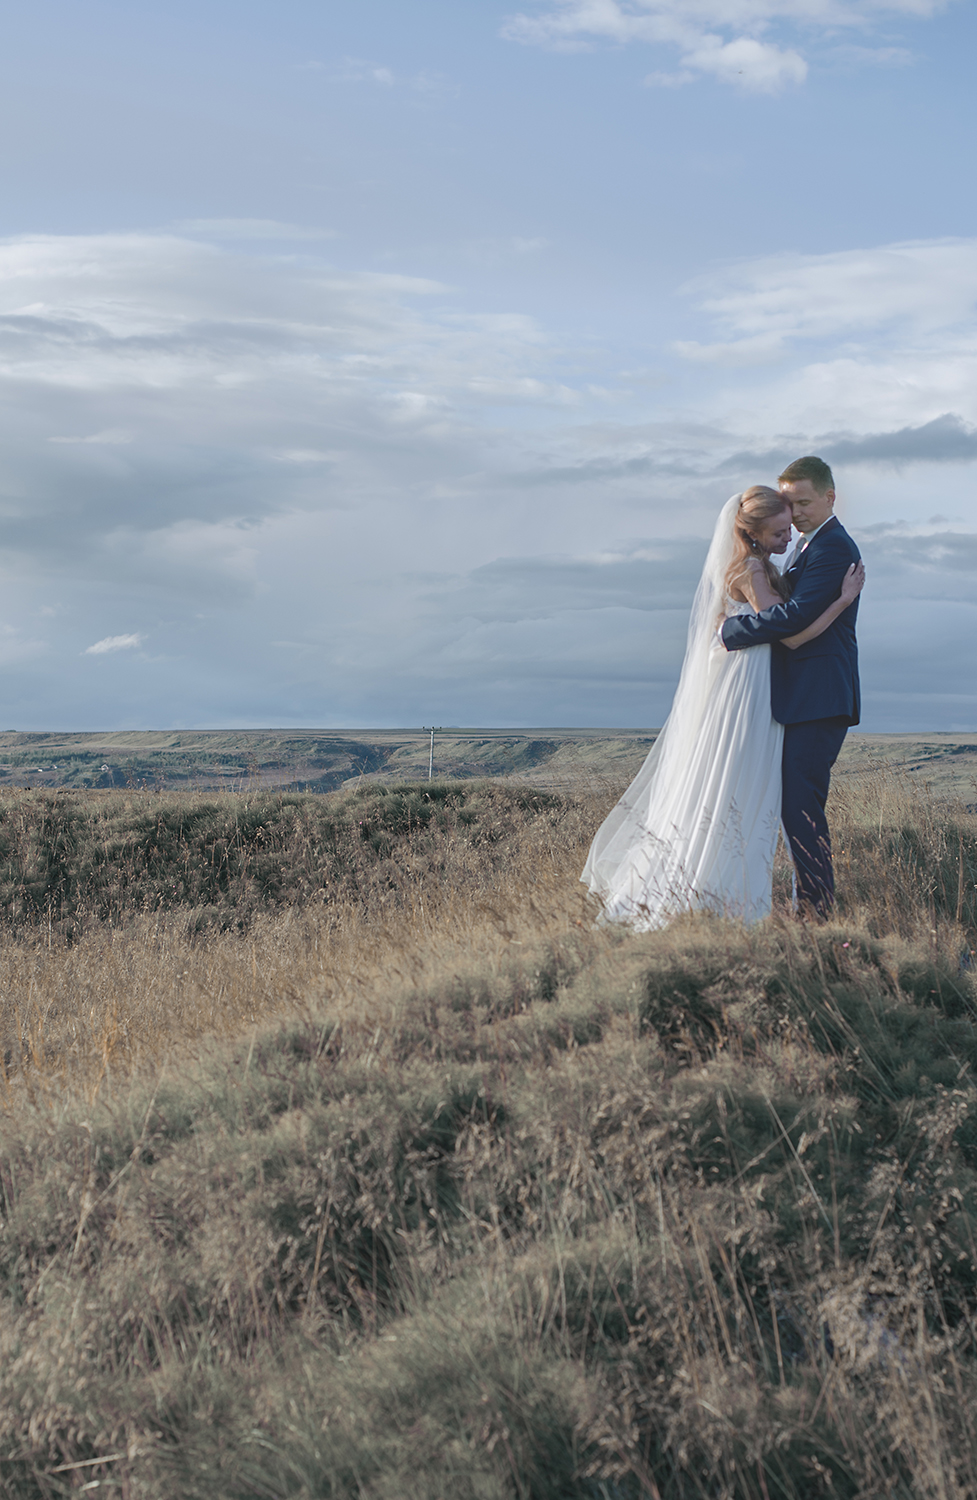 brollop island love portrait wedding portrait outdoor soft light matte finish wedding photographer iceland seos photography fotografi.jpg